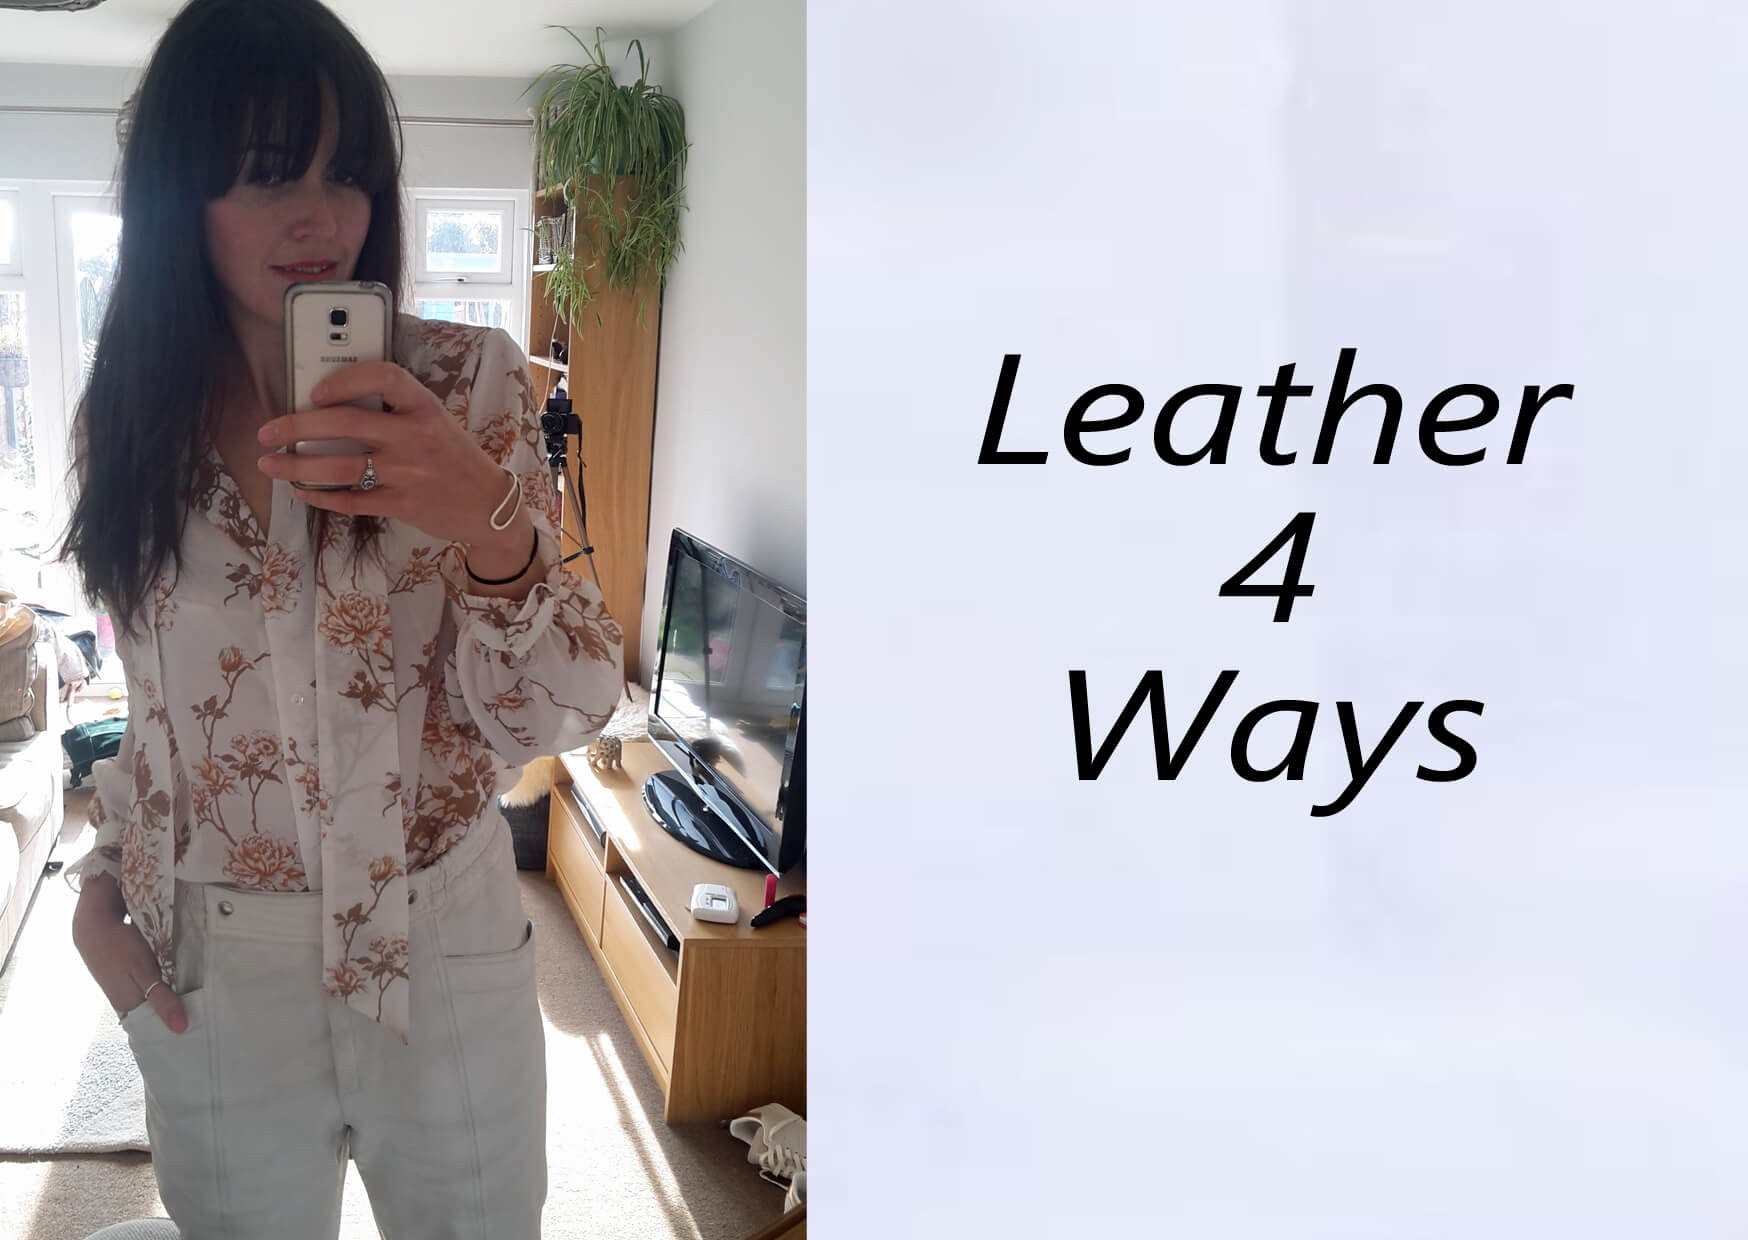 Leather All Ways All Days